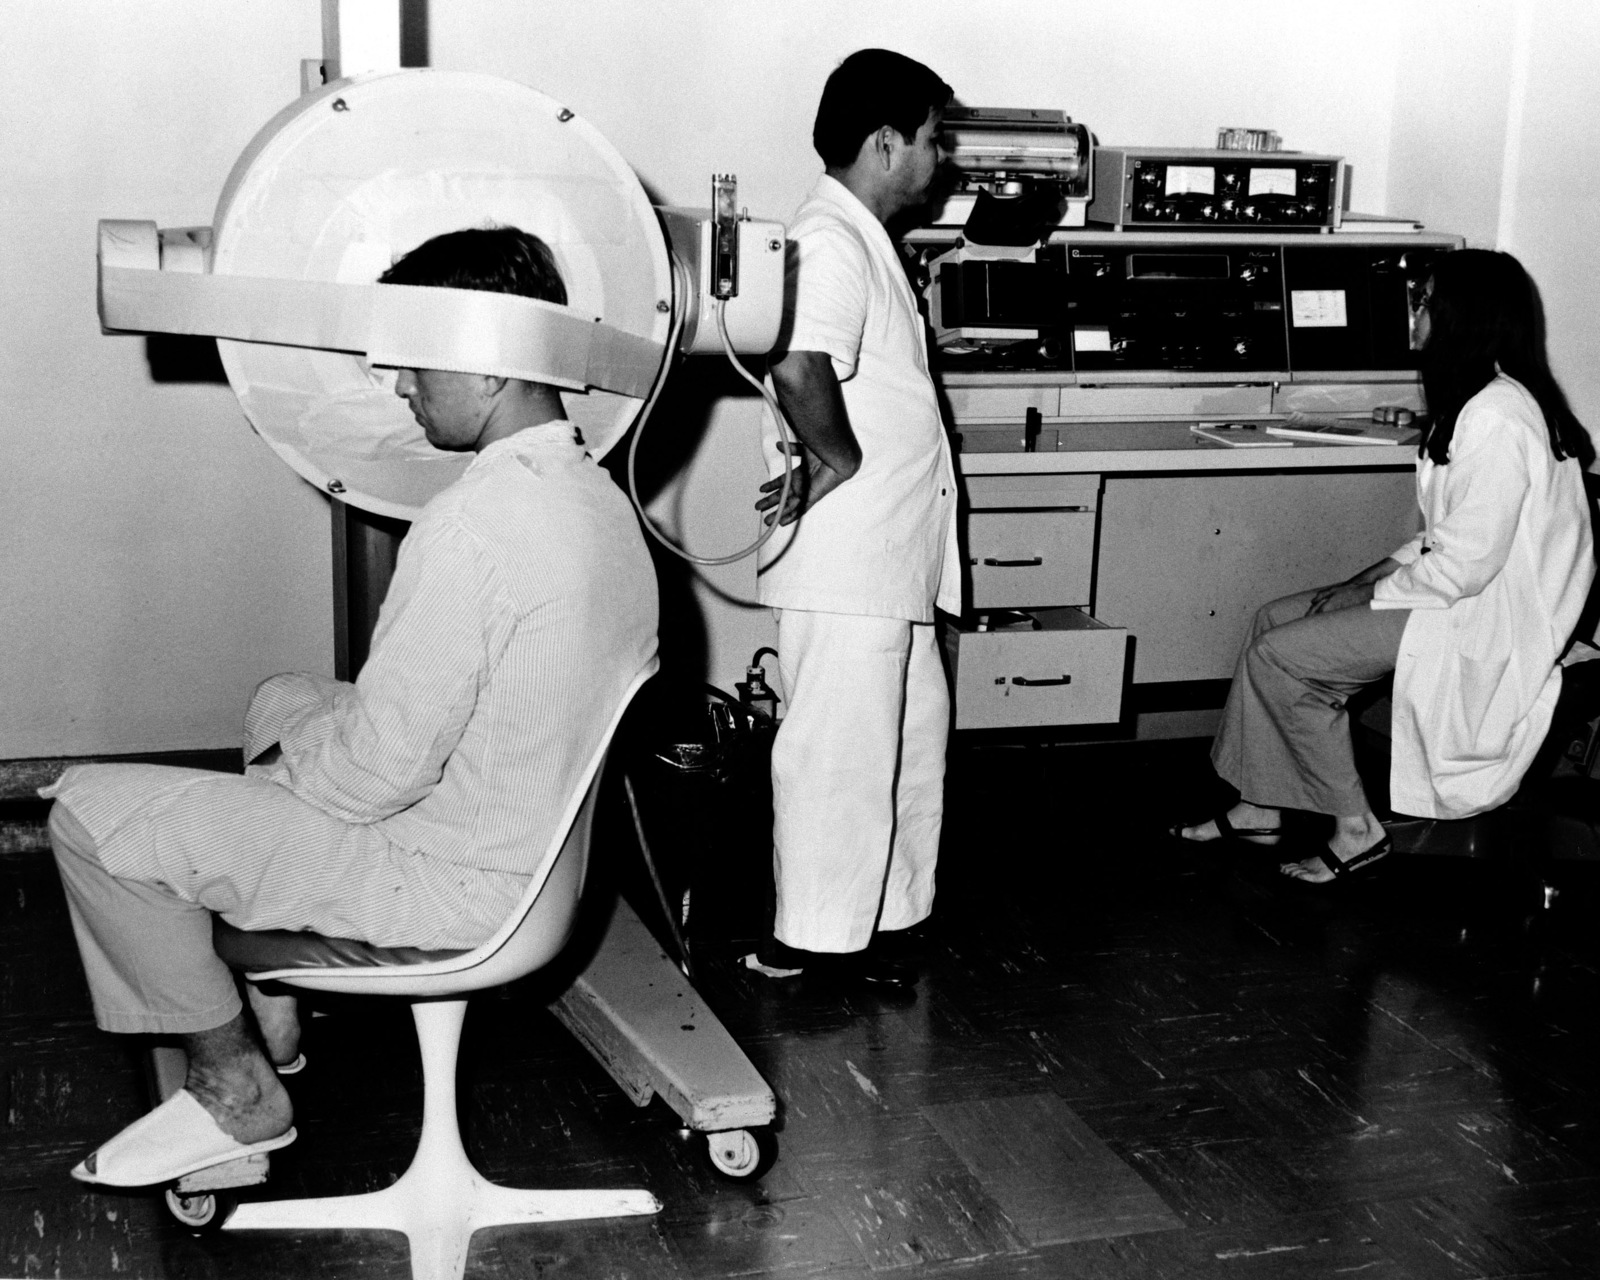 A patient undergoes a brain scan on the Scintillation camera to detect a tumor, blood flow and placement, abscesses, etc., in the Radio Isotope Clinic at the U.S. Army Hospital, Camp Kuwae